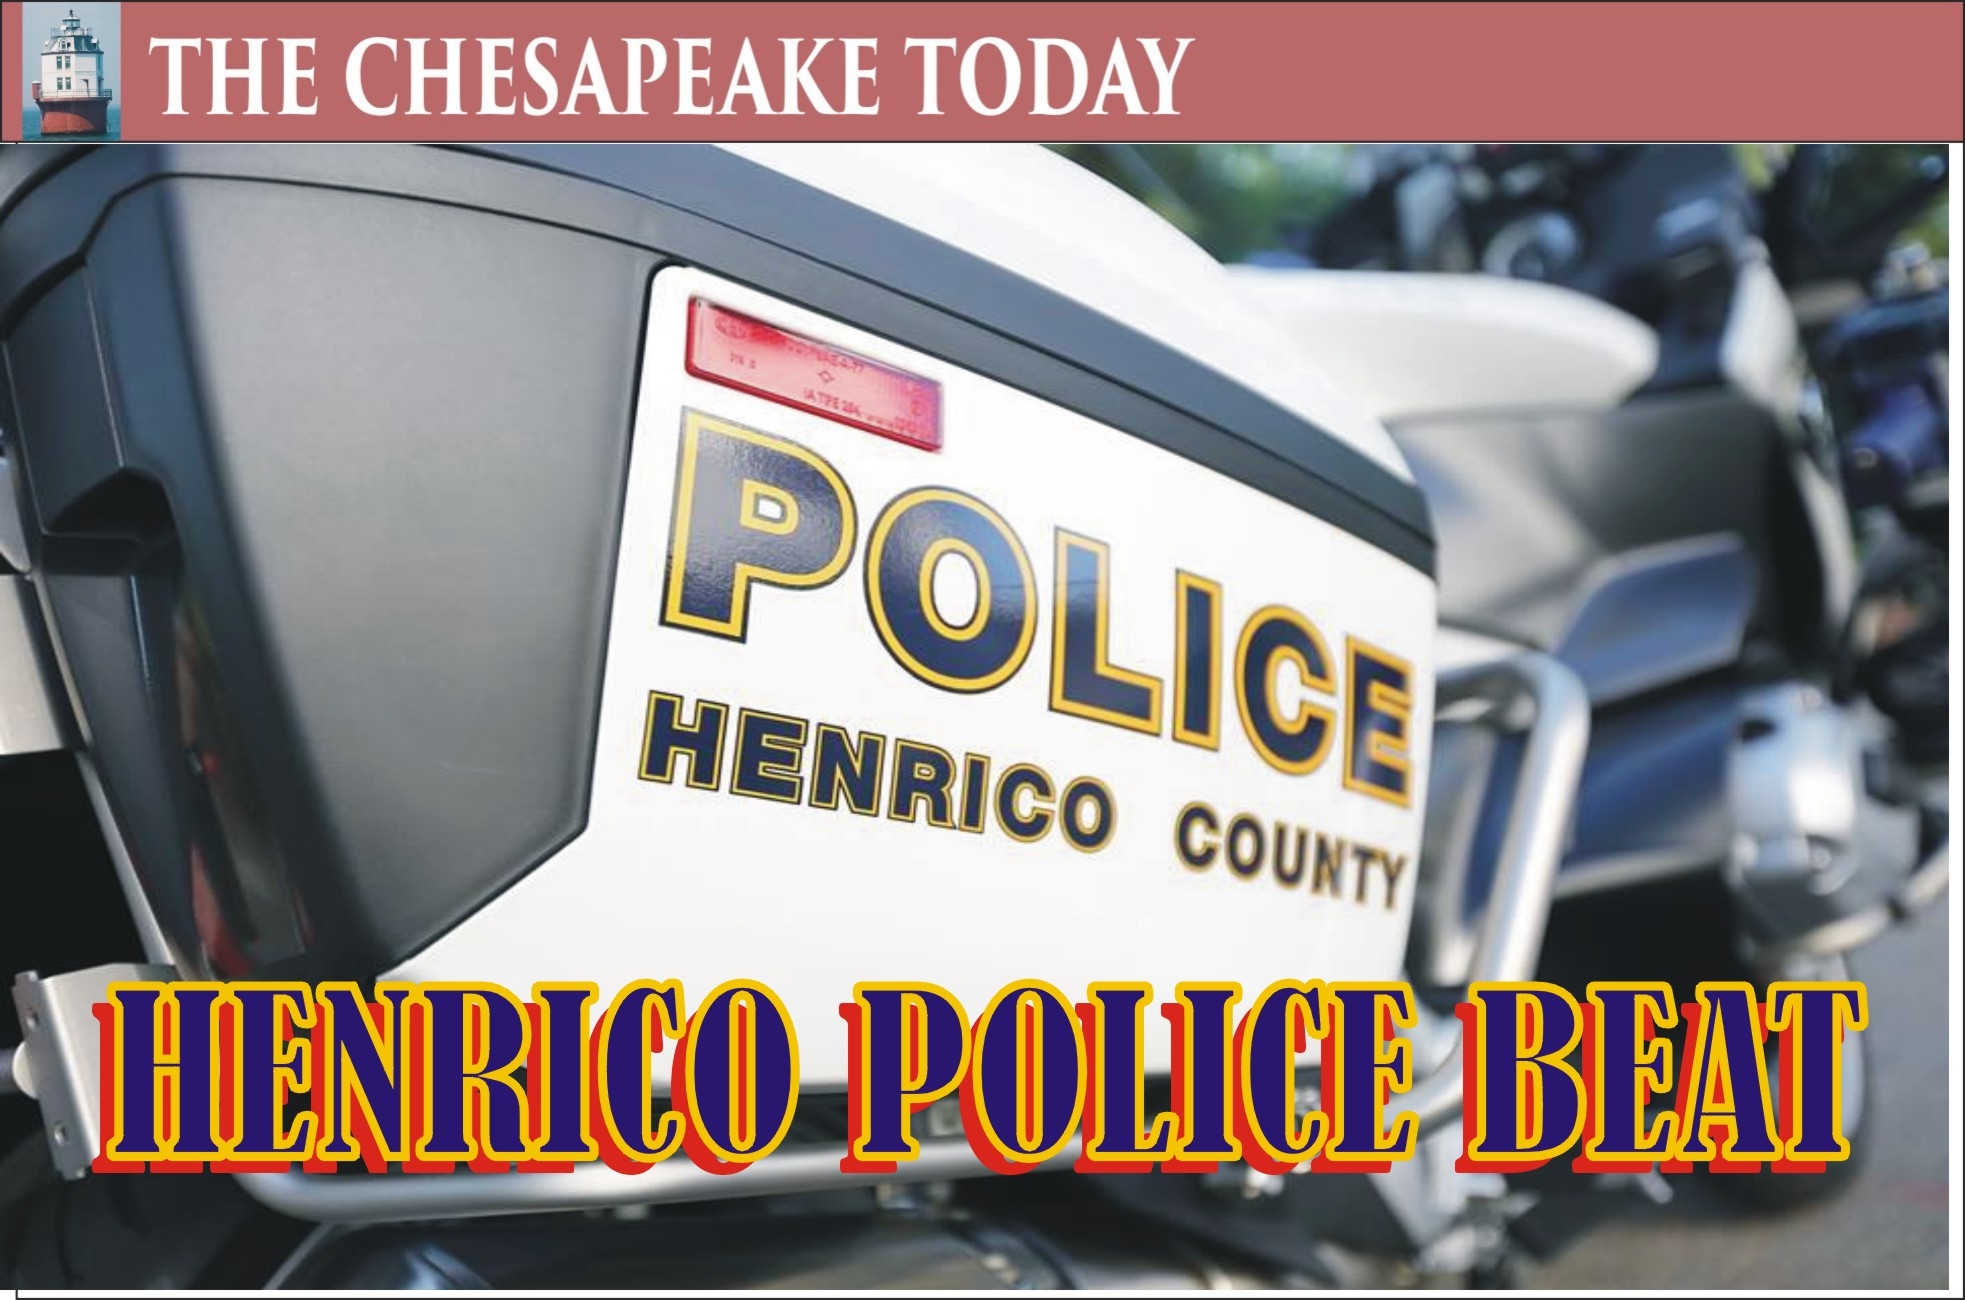 DWI Hit Parade: Henrico County Sheriff DUI arrests for January & February 2021